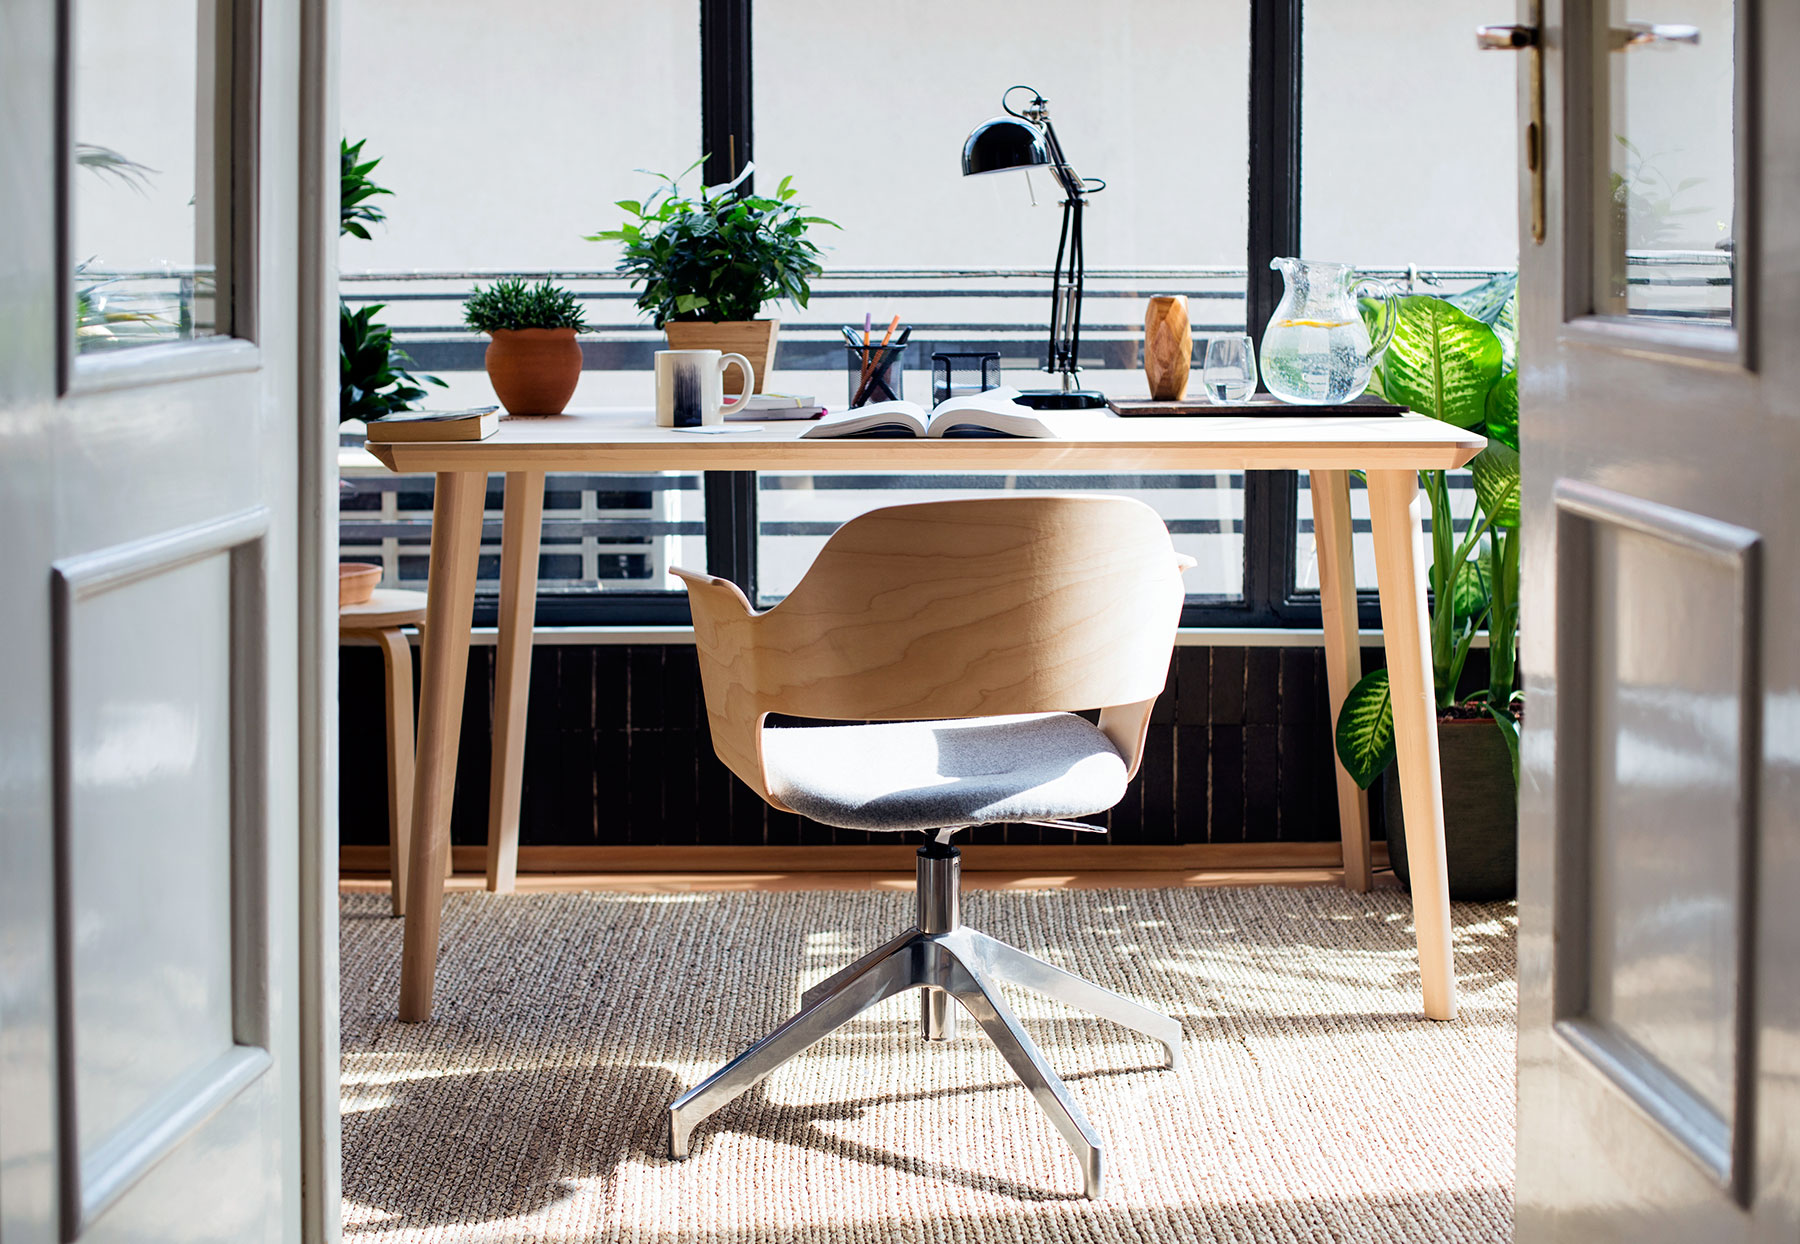 10 Home Office Ideas That Will Make You Want To Work All Day | Real Simple